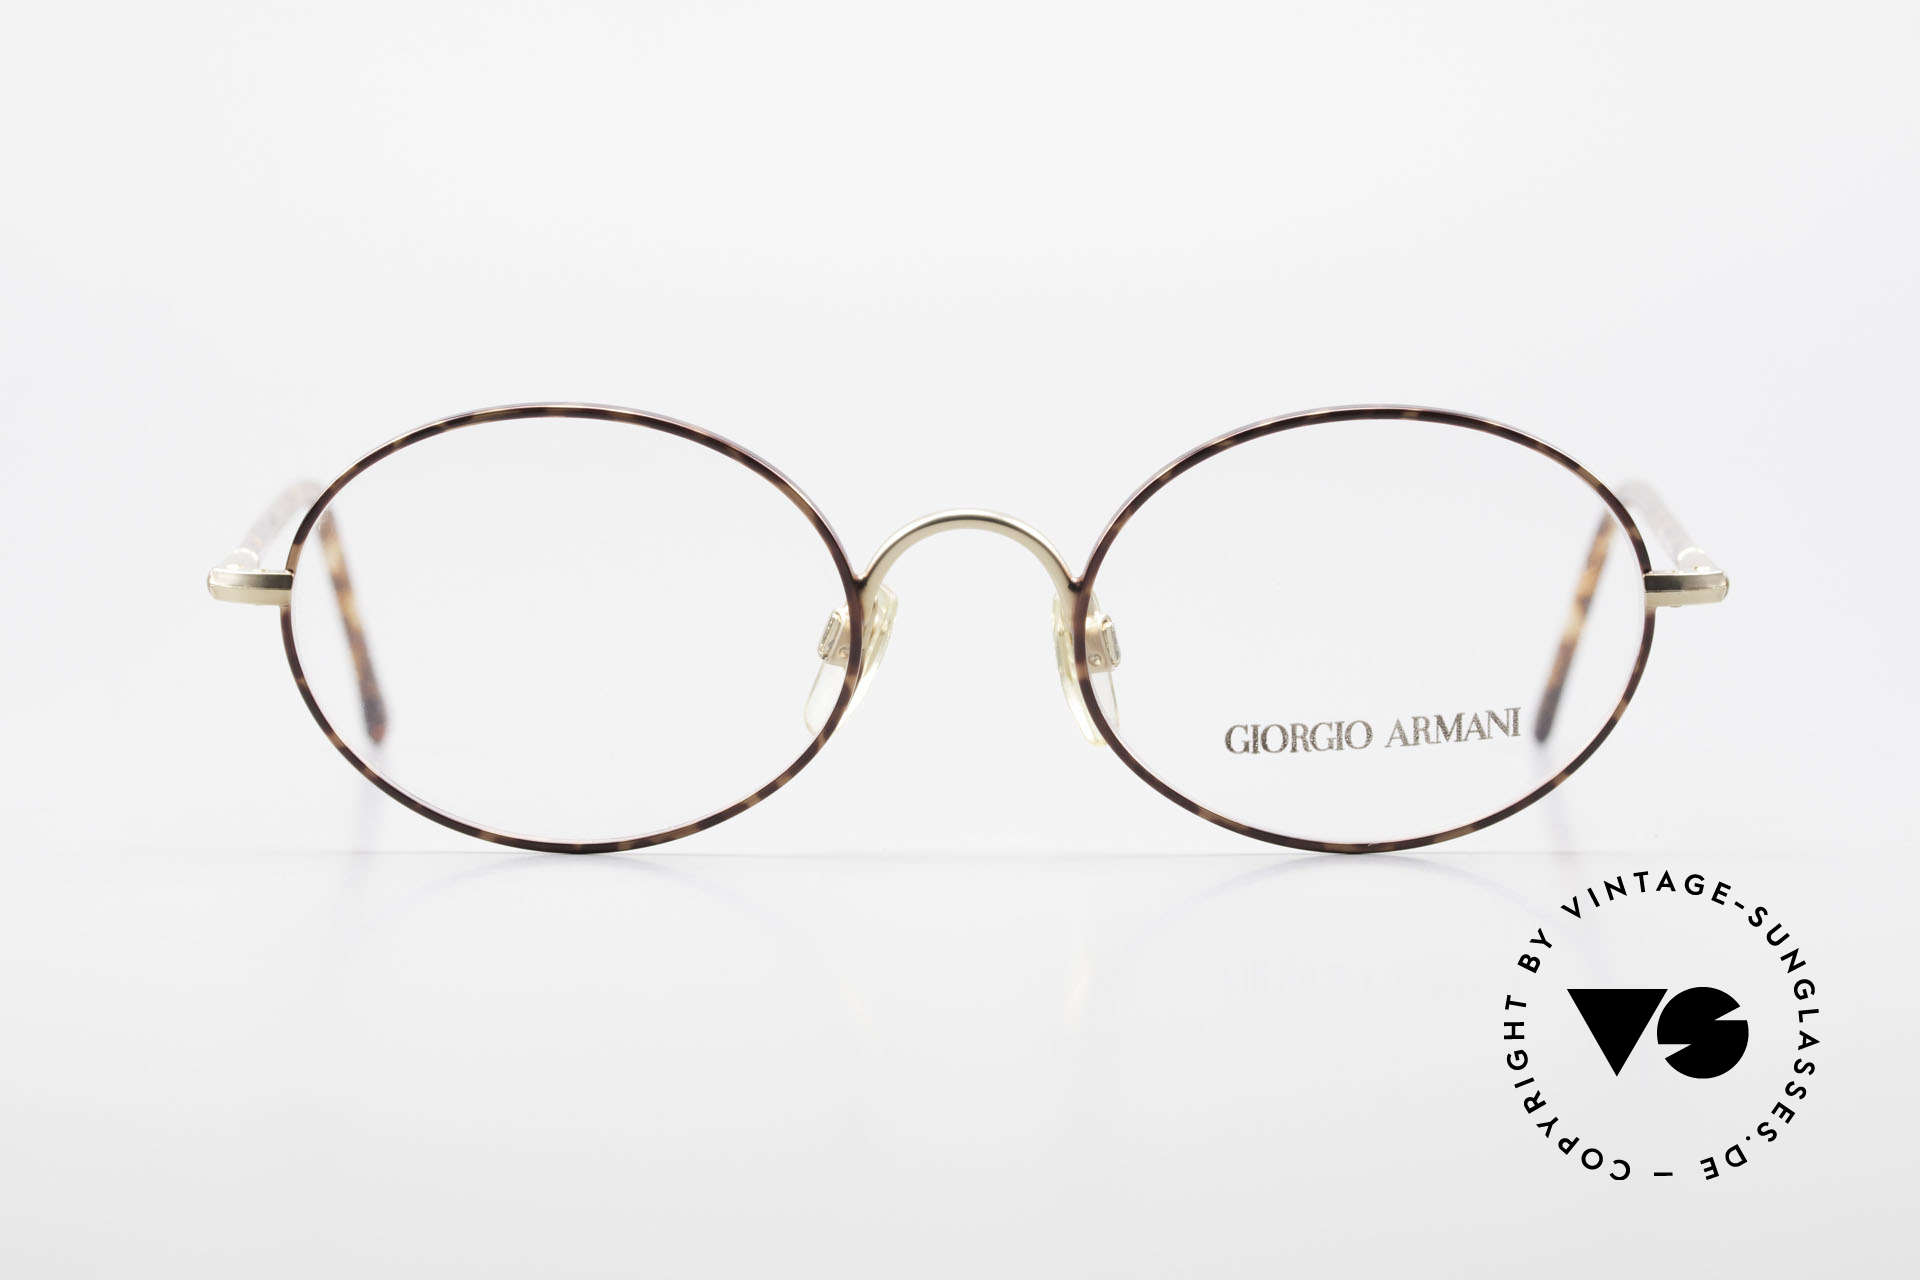 Giorgio Armani 189 Classic Oval Designer Frame, tangible premium-quality with flexible spring hinges, Made for Men